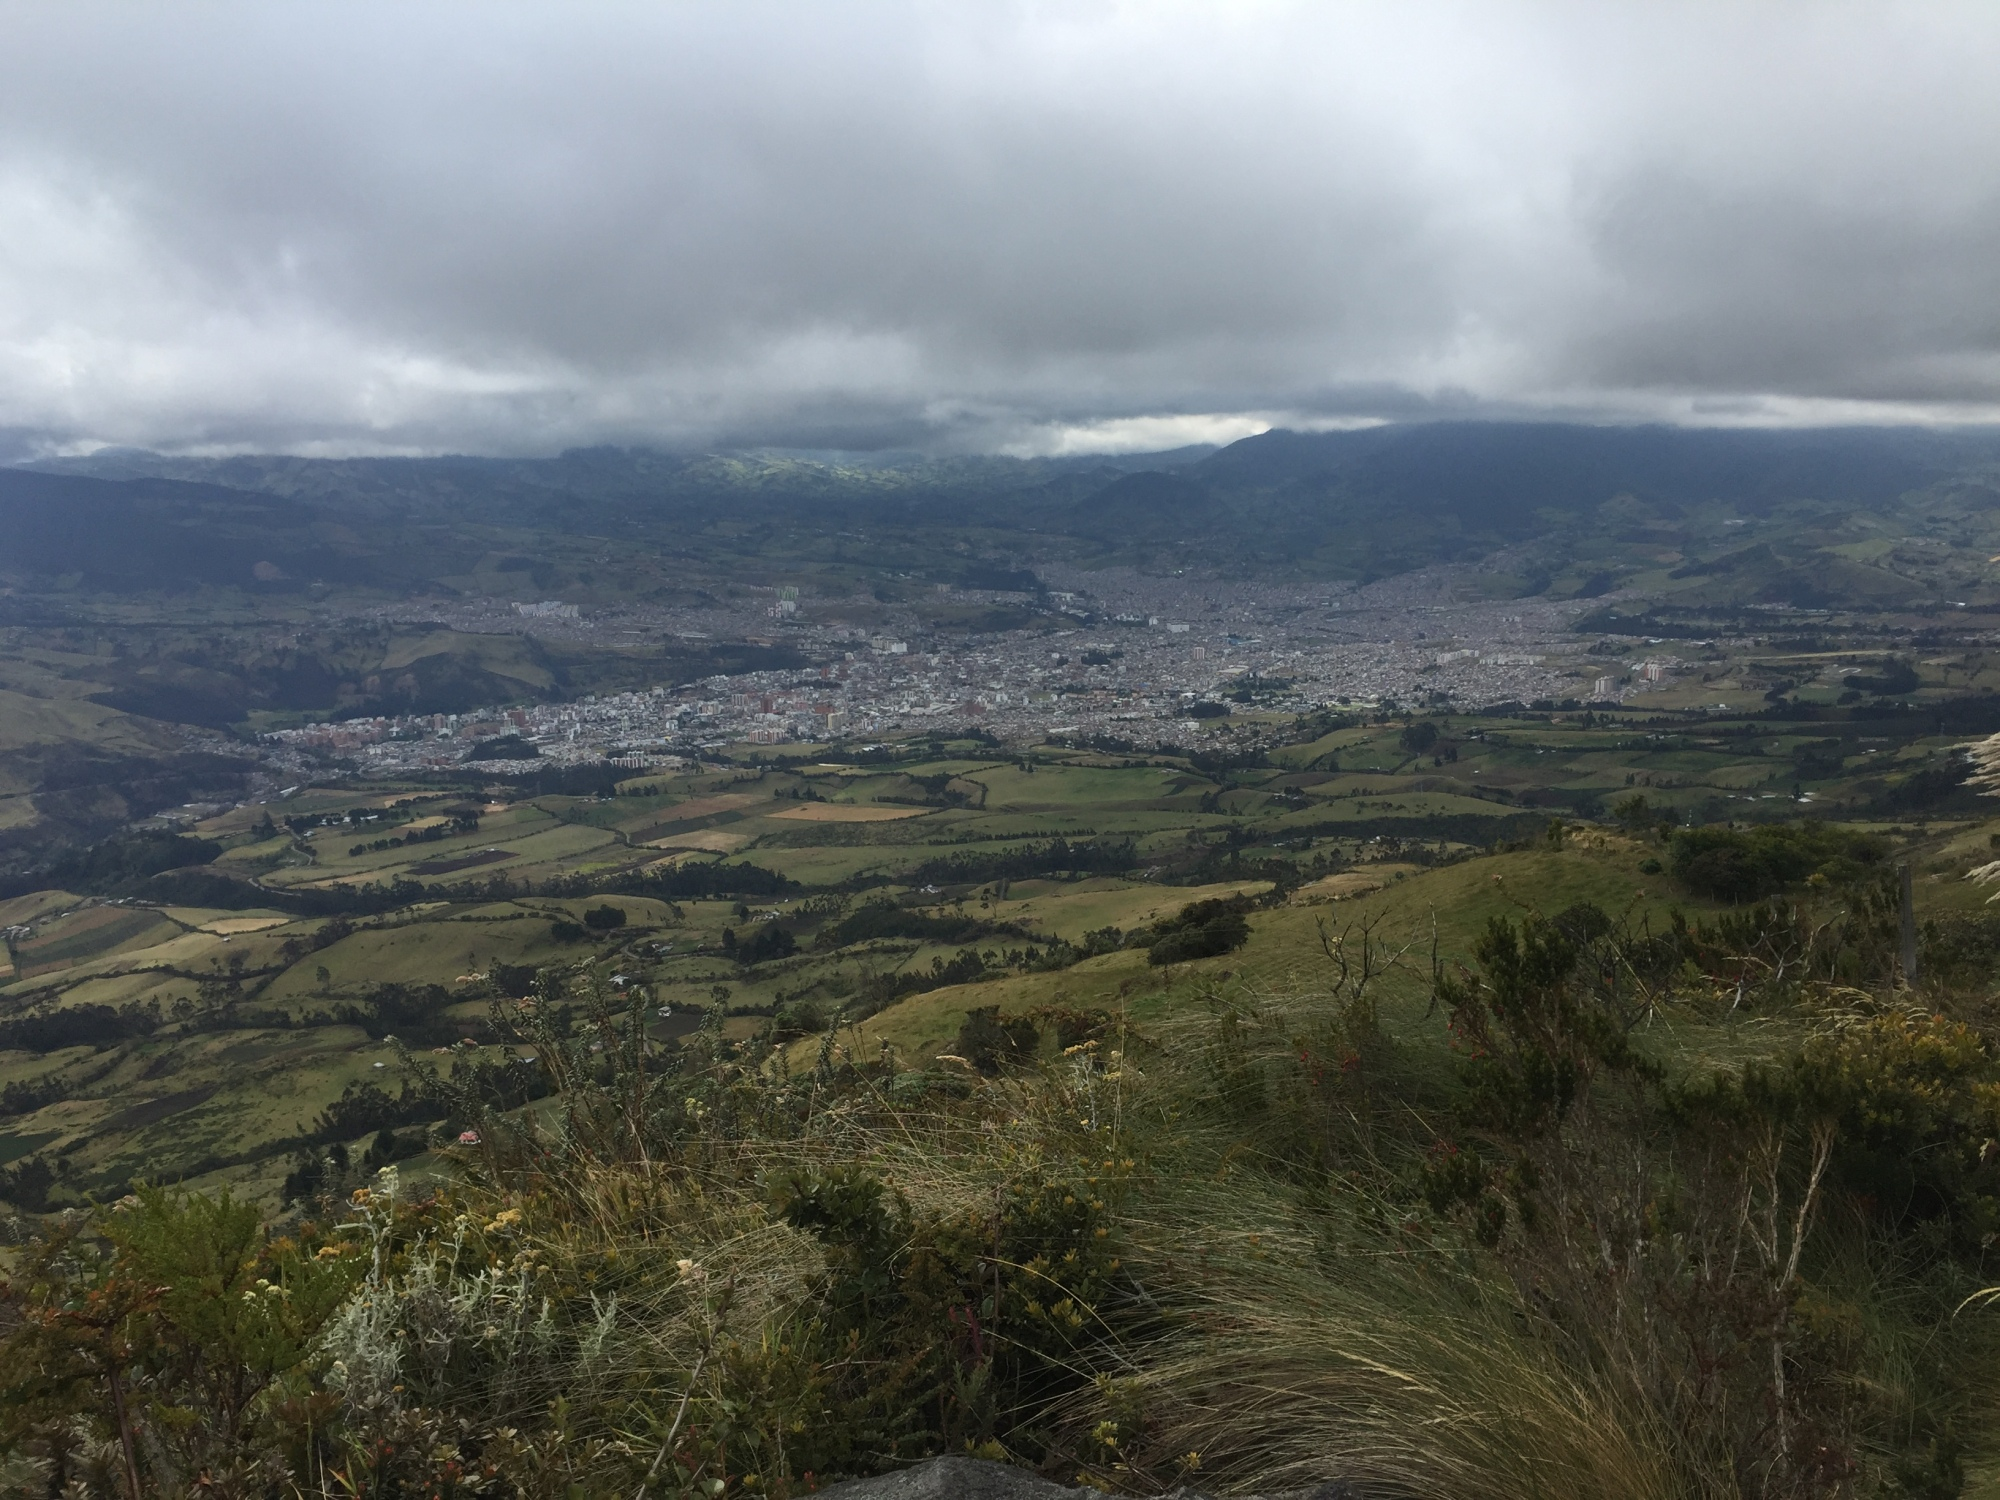 Pasto, Nariño, Colombia, as seen from vólcan galeras